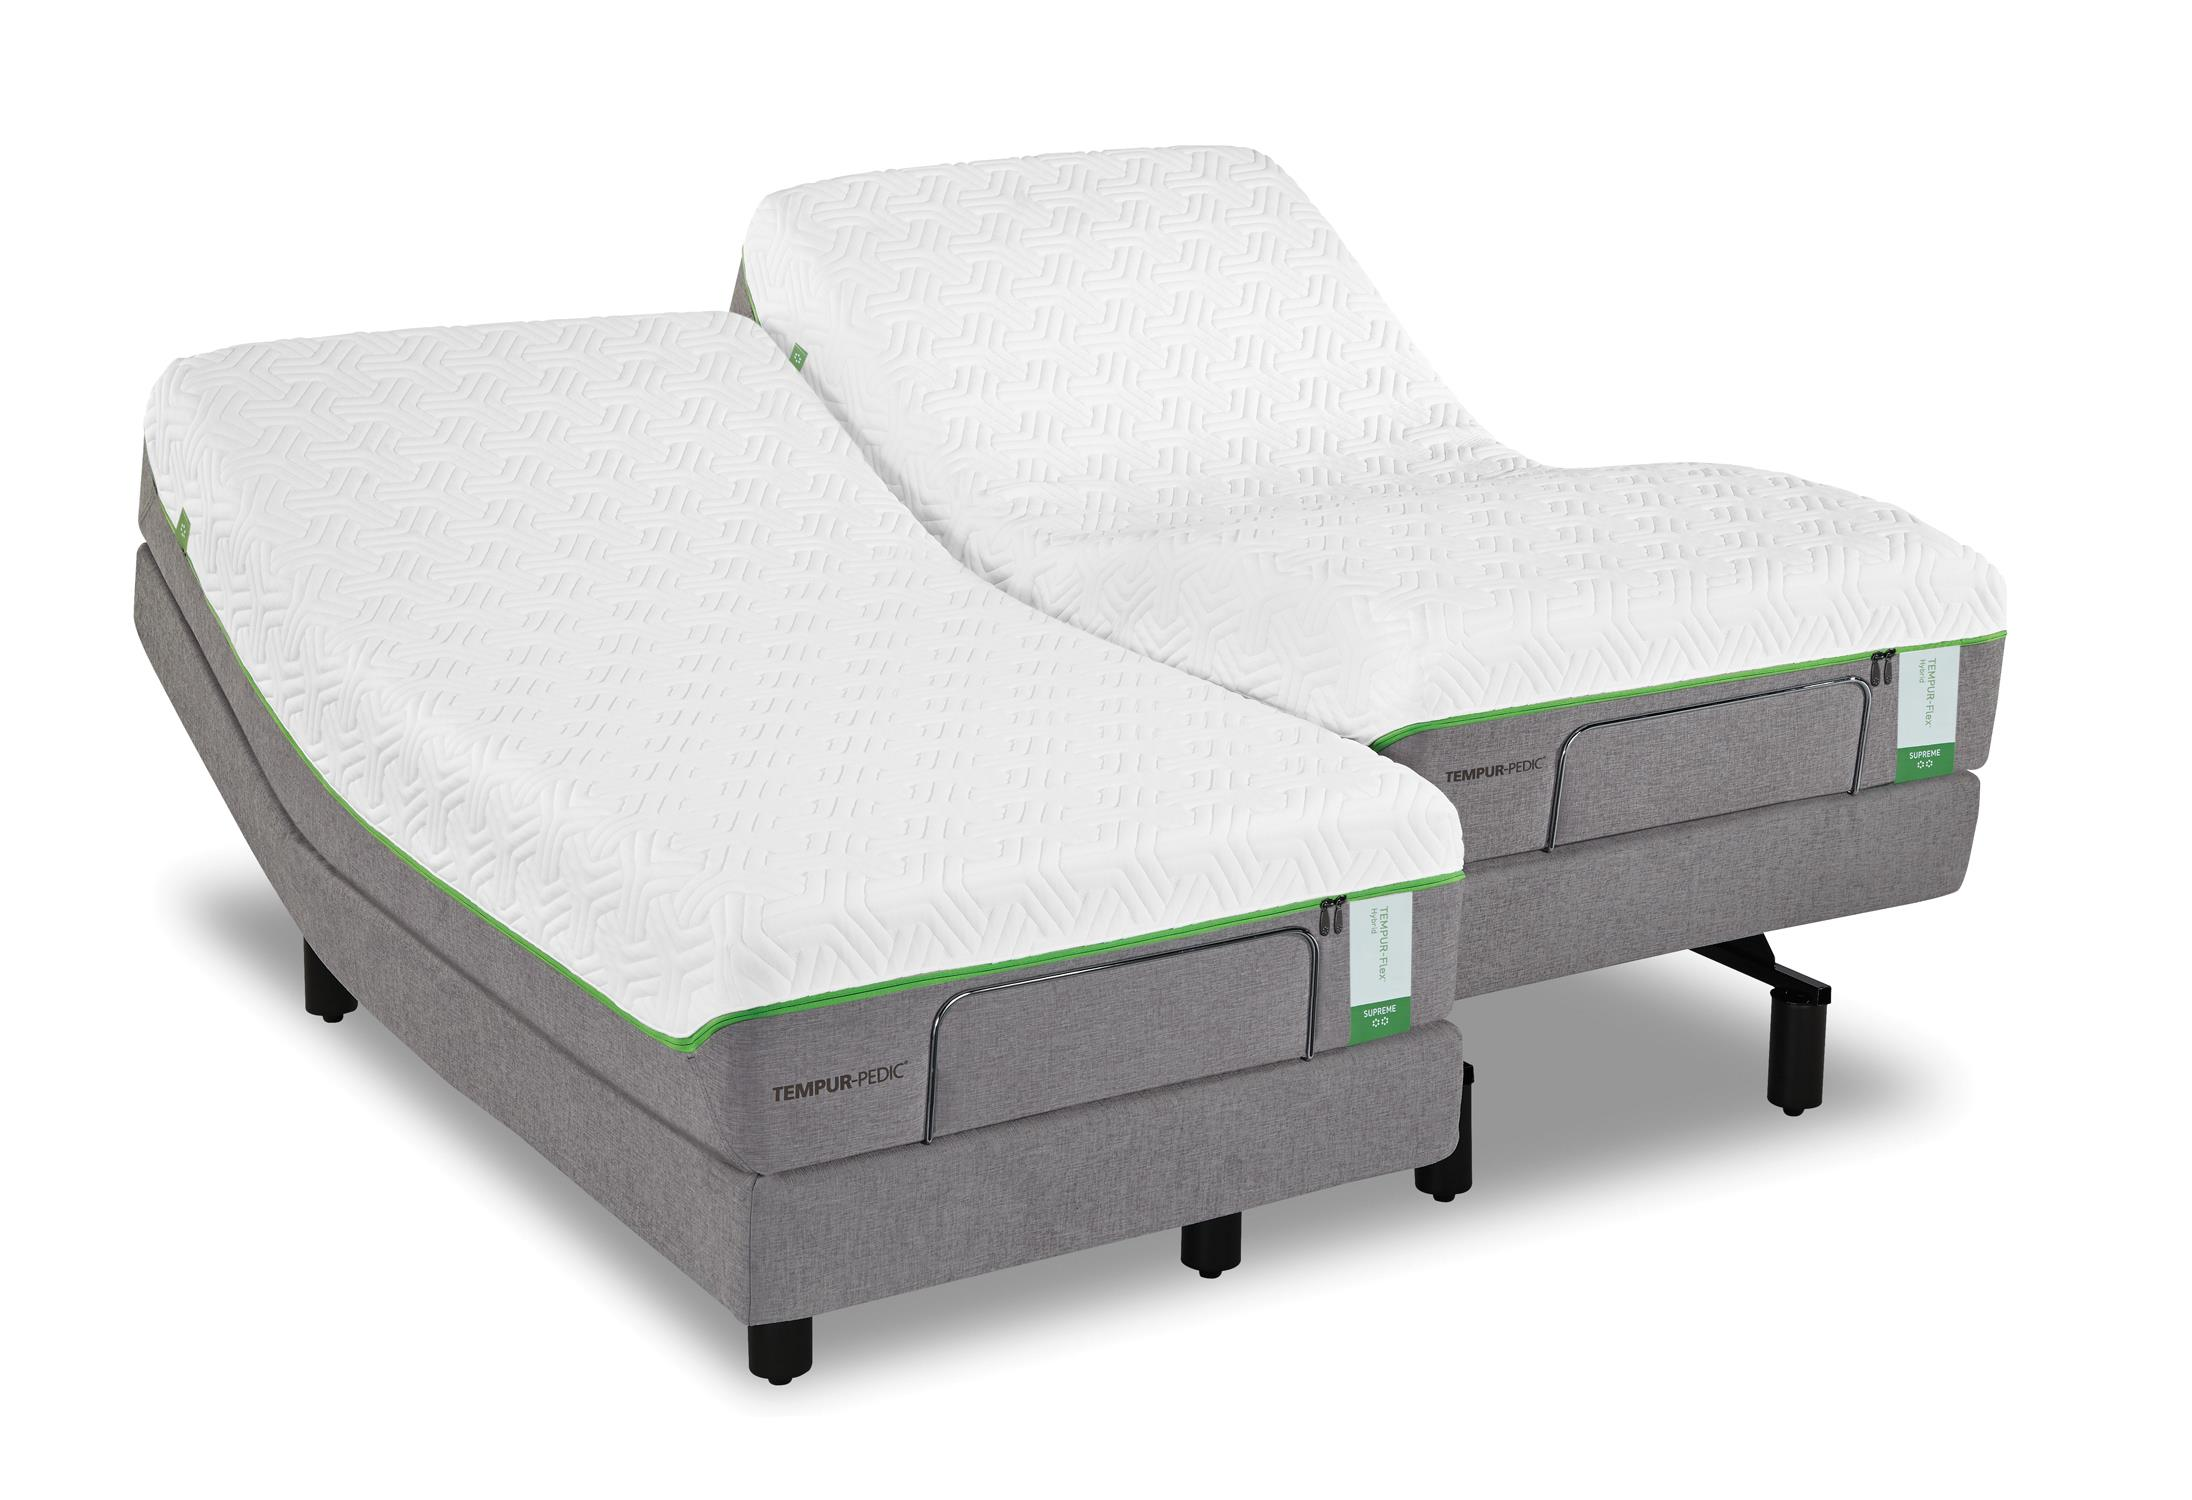 Tempur-Pedic® TEMPUR-Flex Elite Cal King Medium Soft Plush Mattress Set - Item Number: 10117180+2x25289290